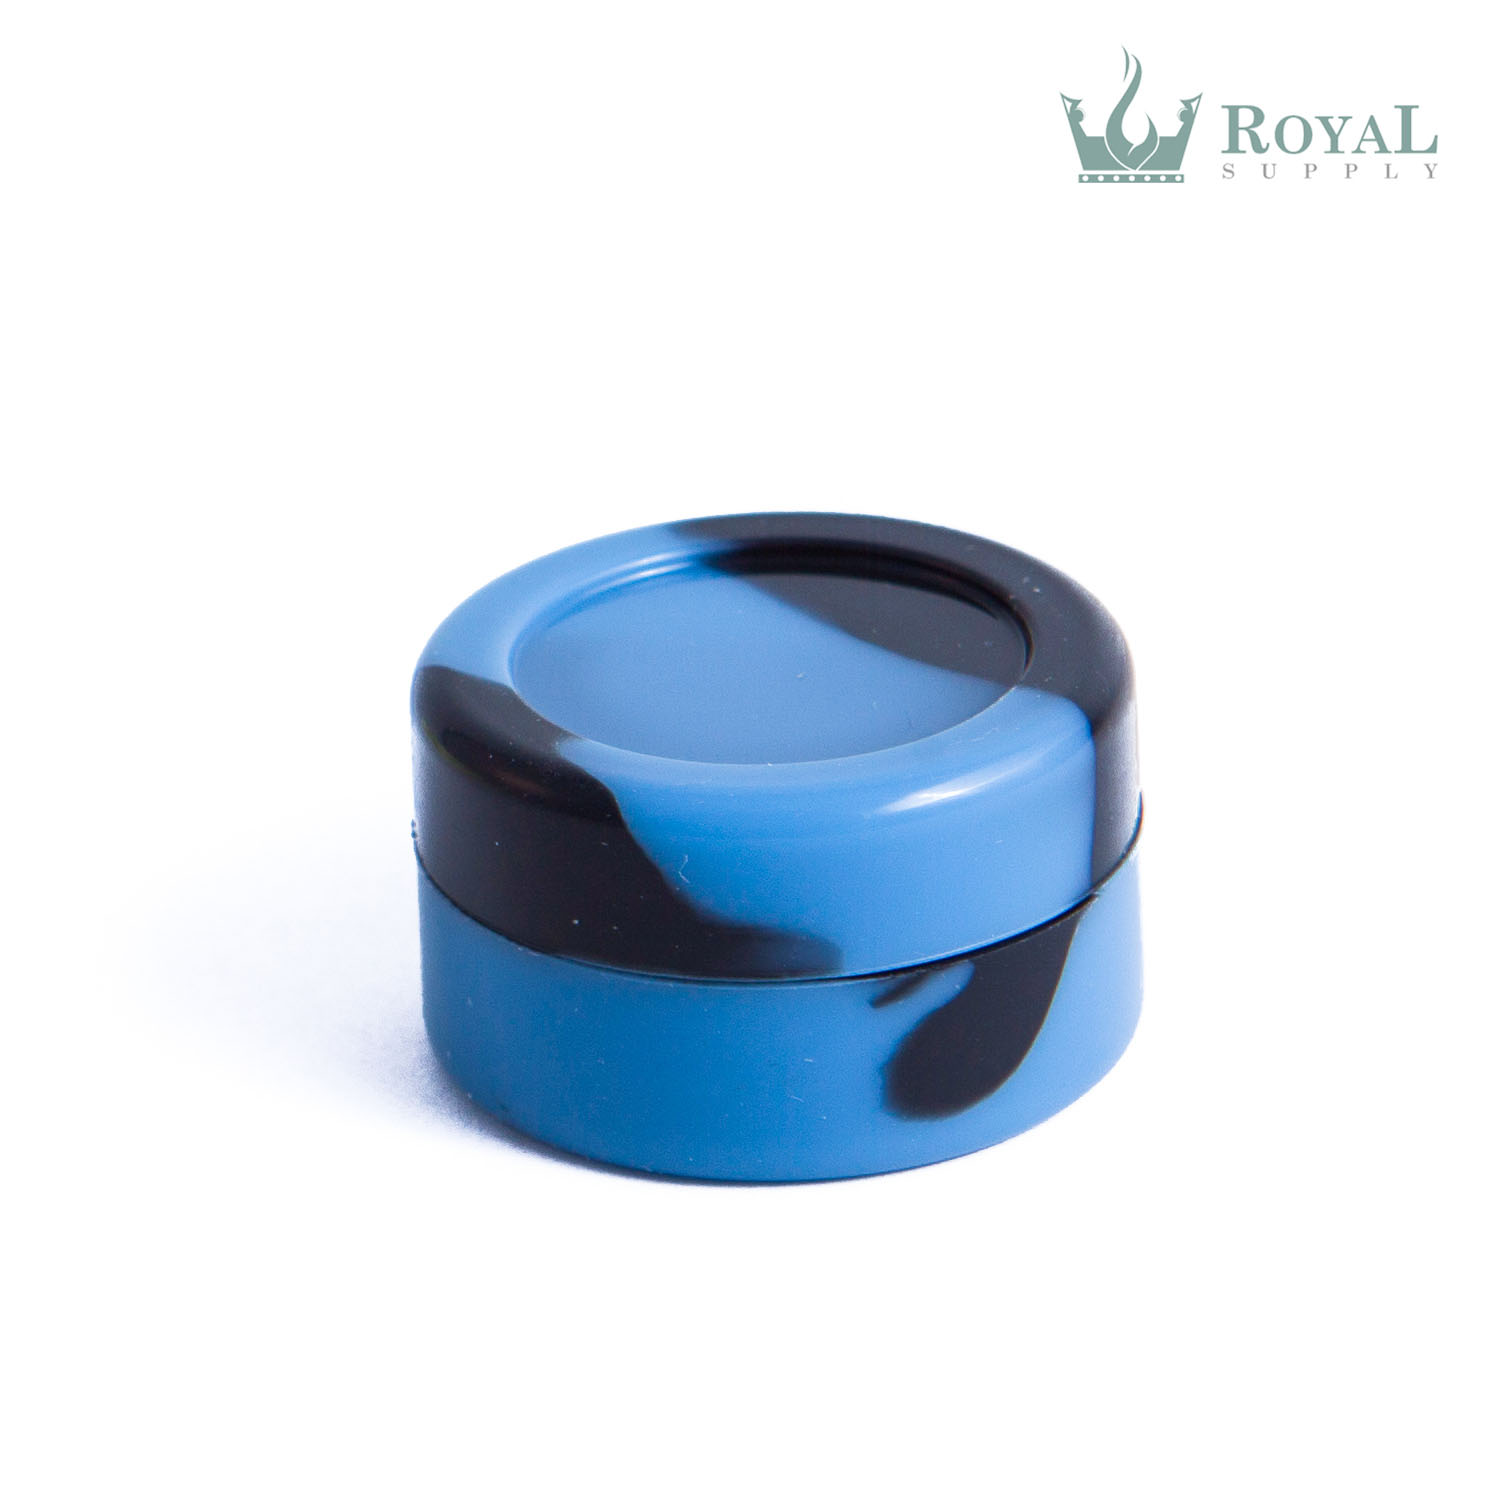 5 ml Silicone Non-Stick Concentrate Container